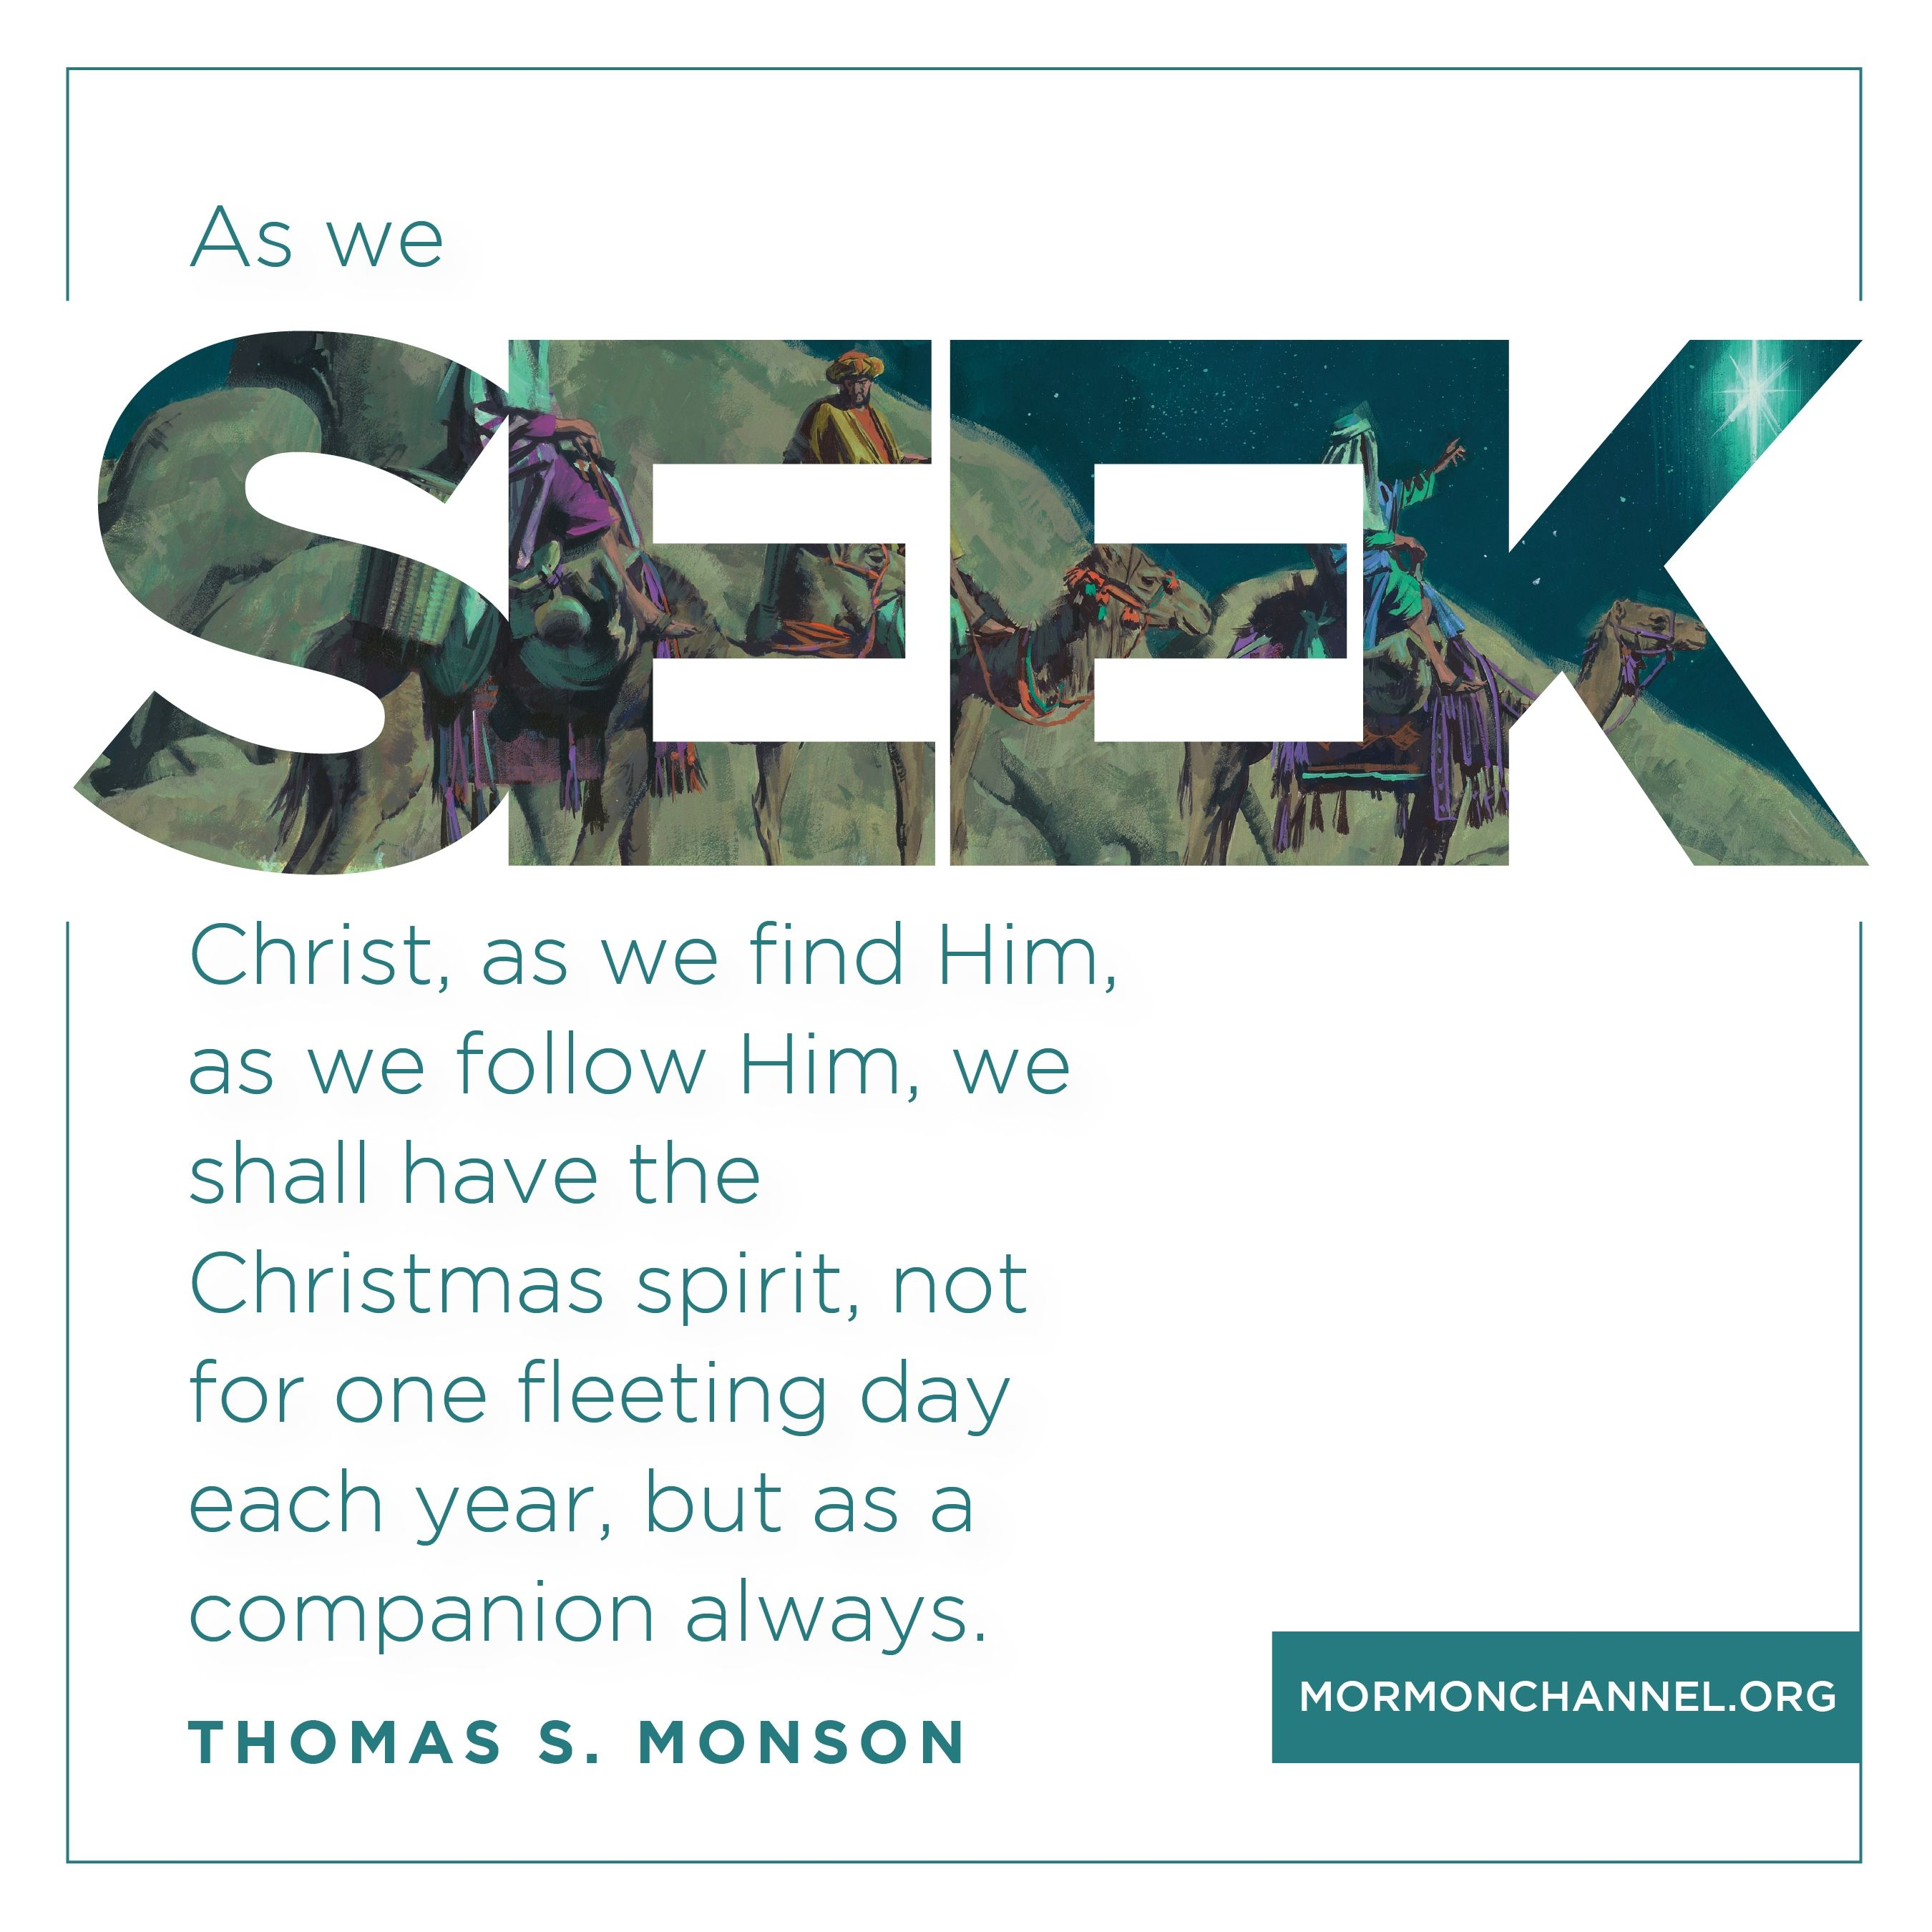 """""""As we seek Christ, as we find Him, as we follow Him, we shall have the Christmas spirit, not for one fleeting day each year, but as a companion always.""""—President Thomas S. Monson, """"In the Search of the Christmas Spirit"""""""